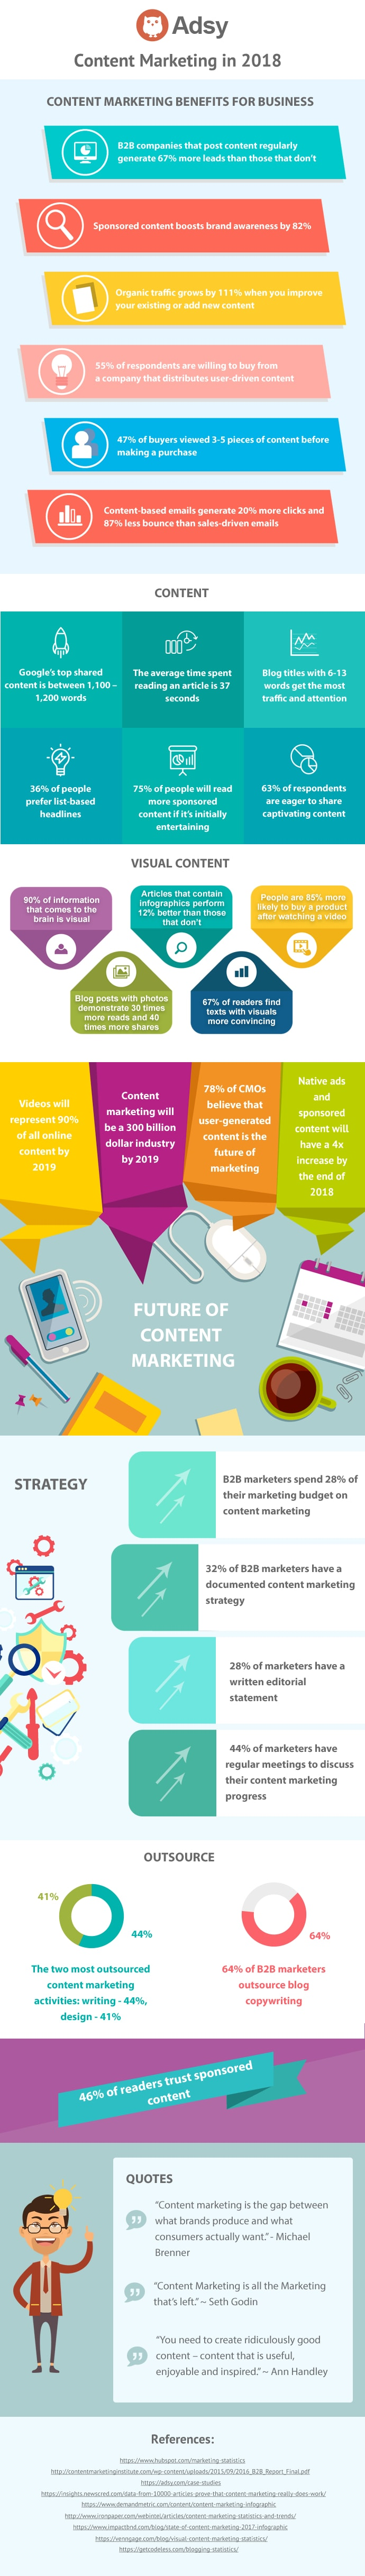 Adsy's Infographic of Content Marketing